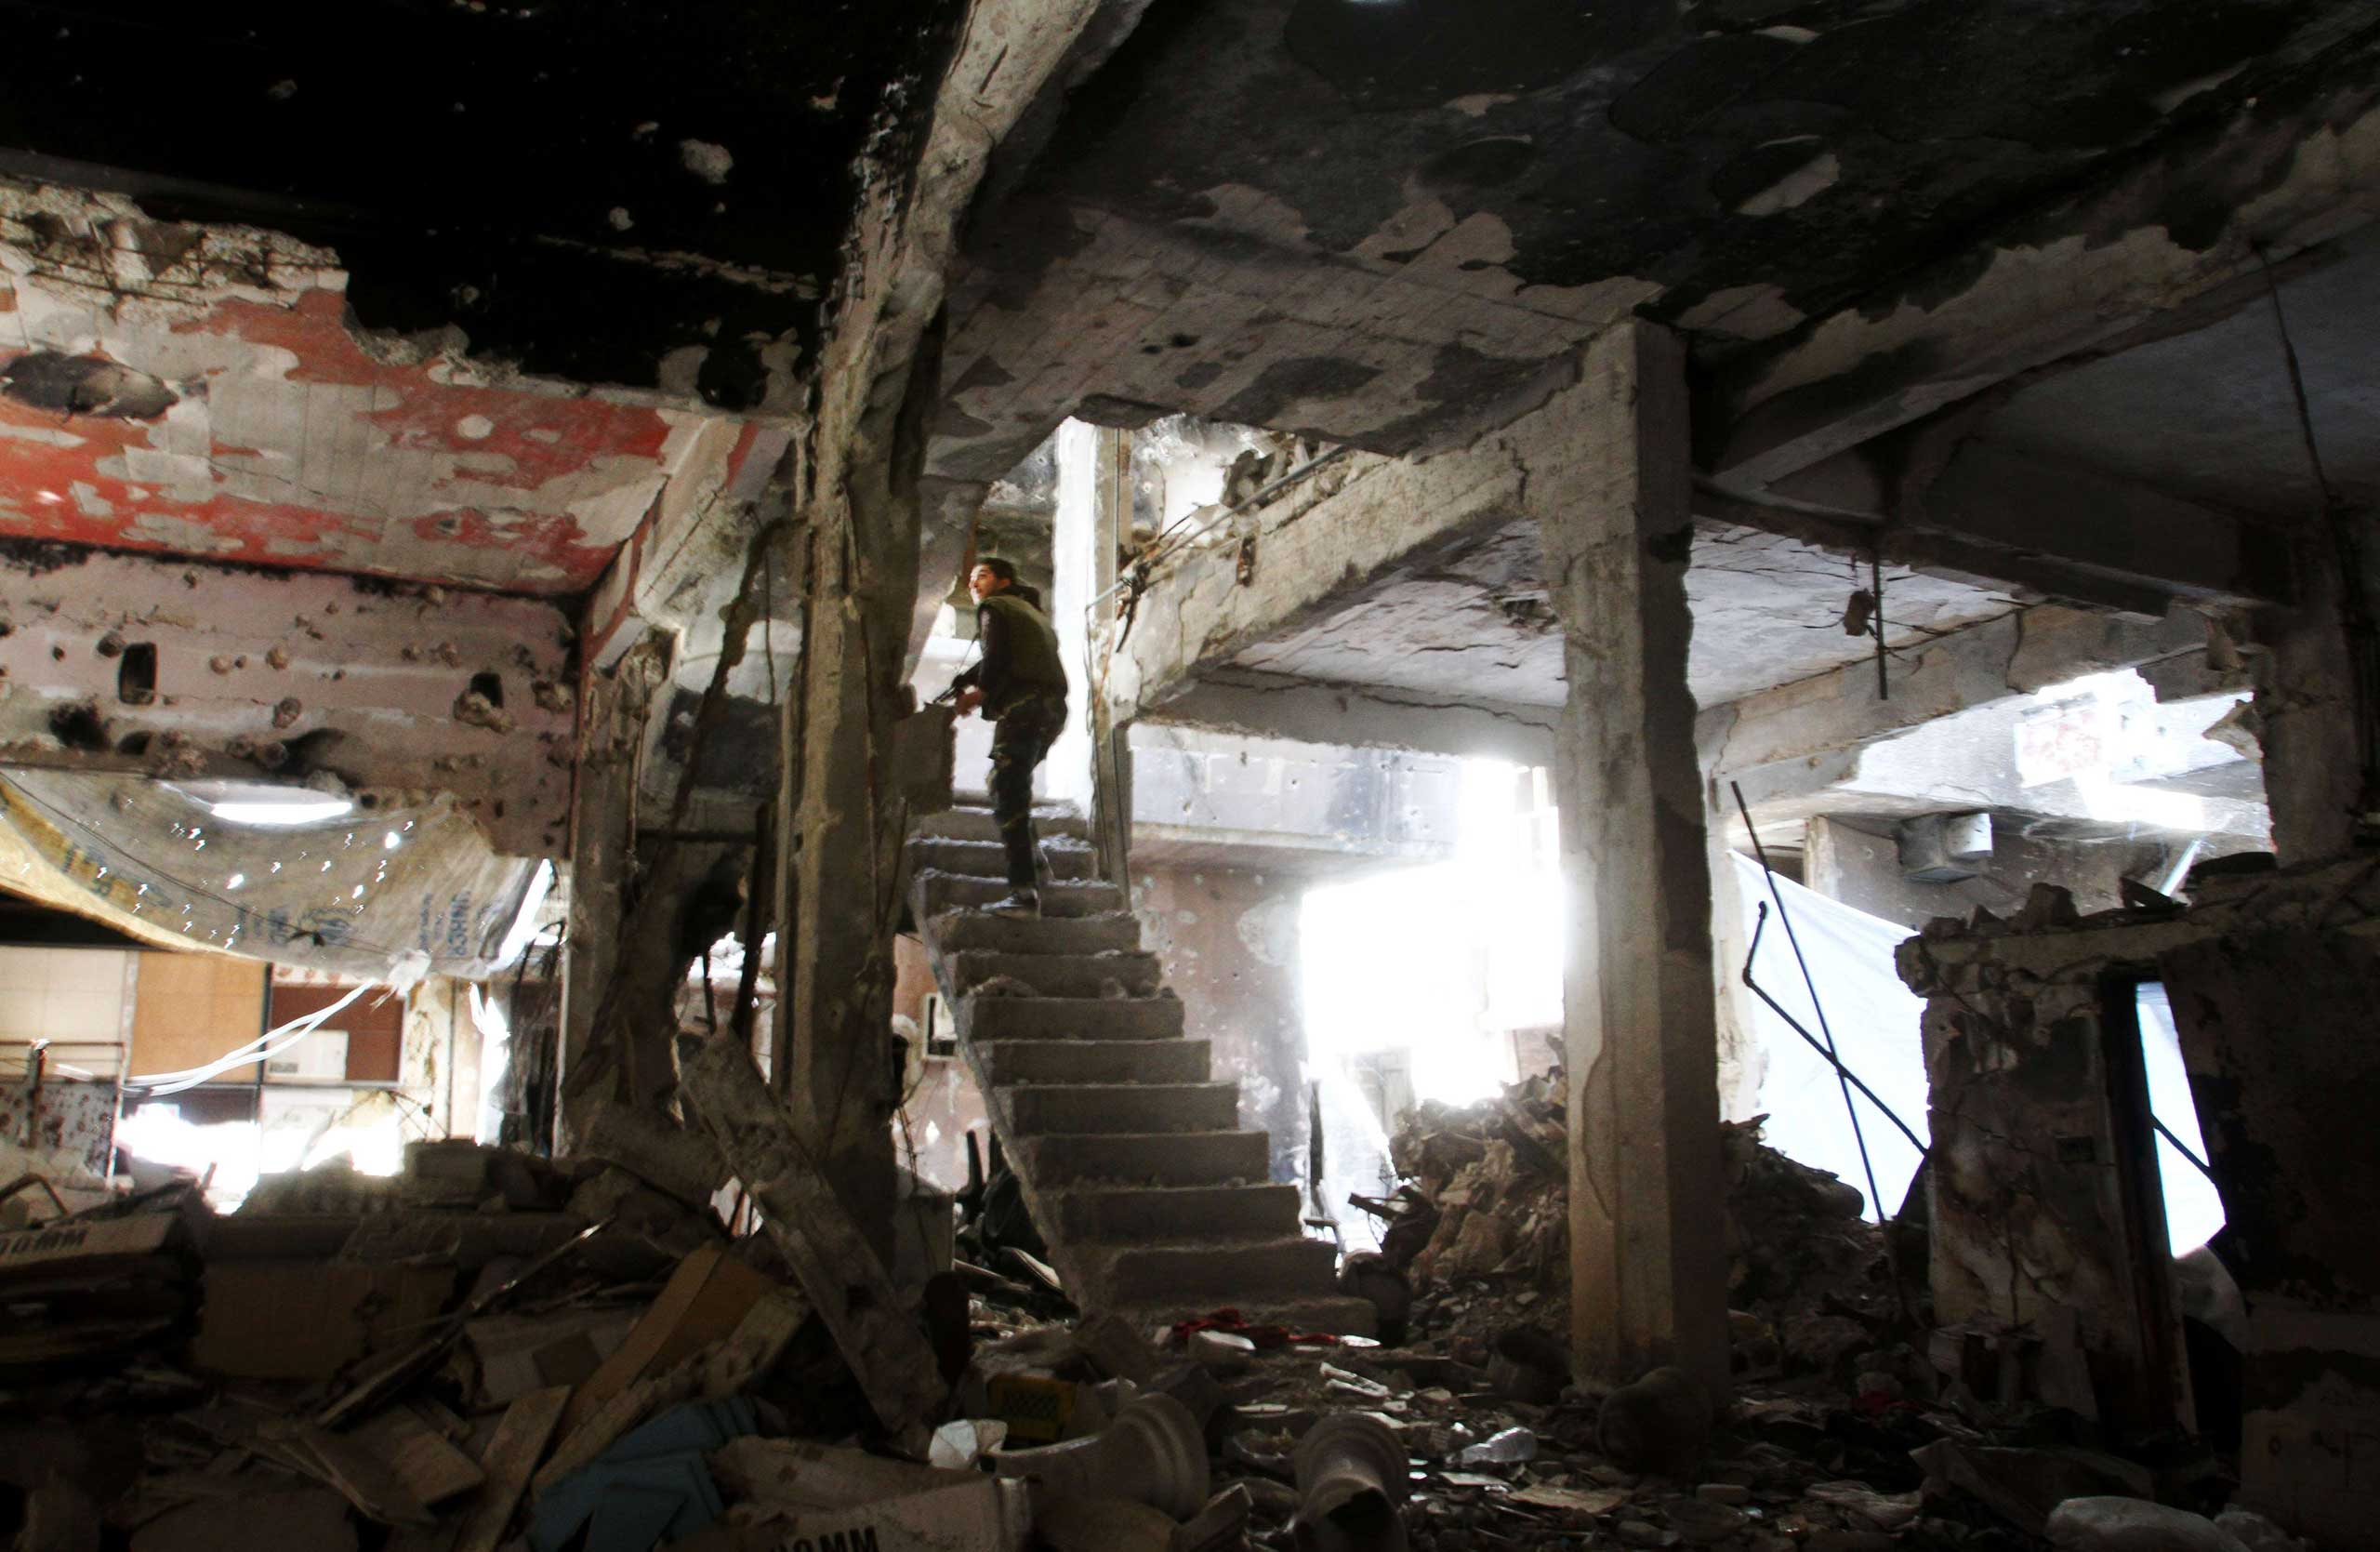 A man stands on a staircase inside a demolished building in the Yarmuk Palestinian refugee camp in the Syrian capital Damascus on April 6, 2015.